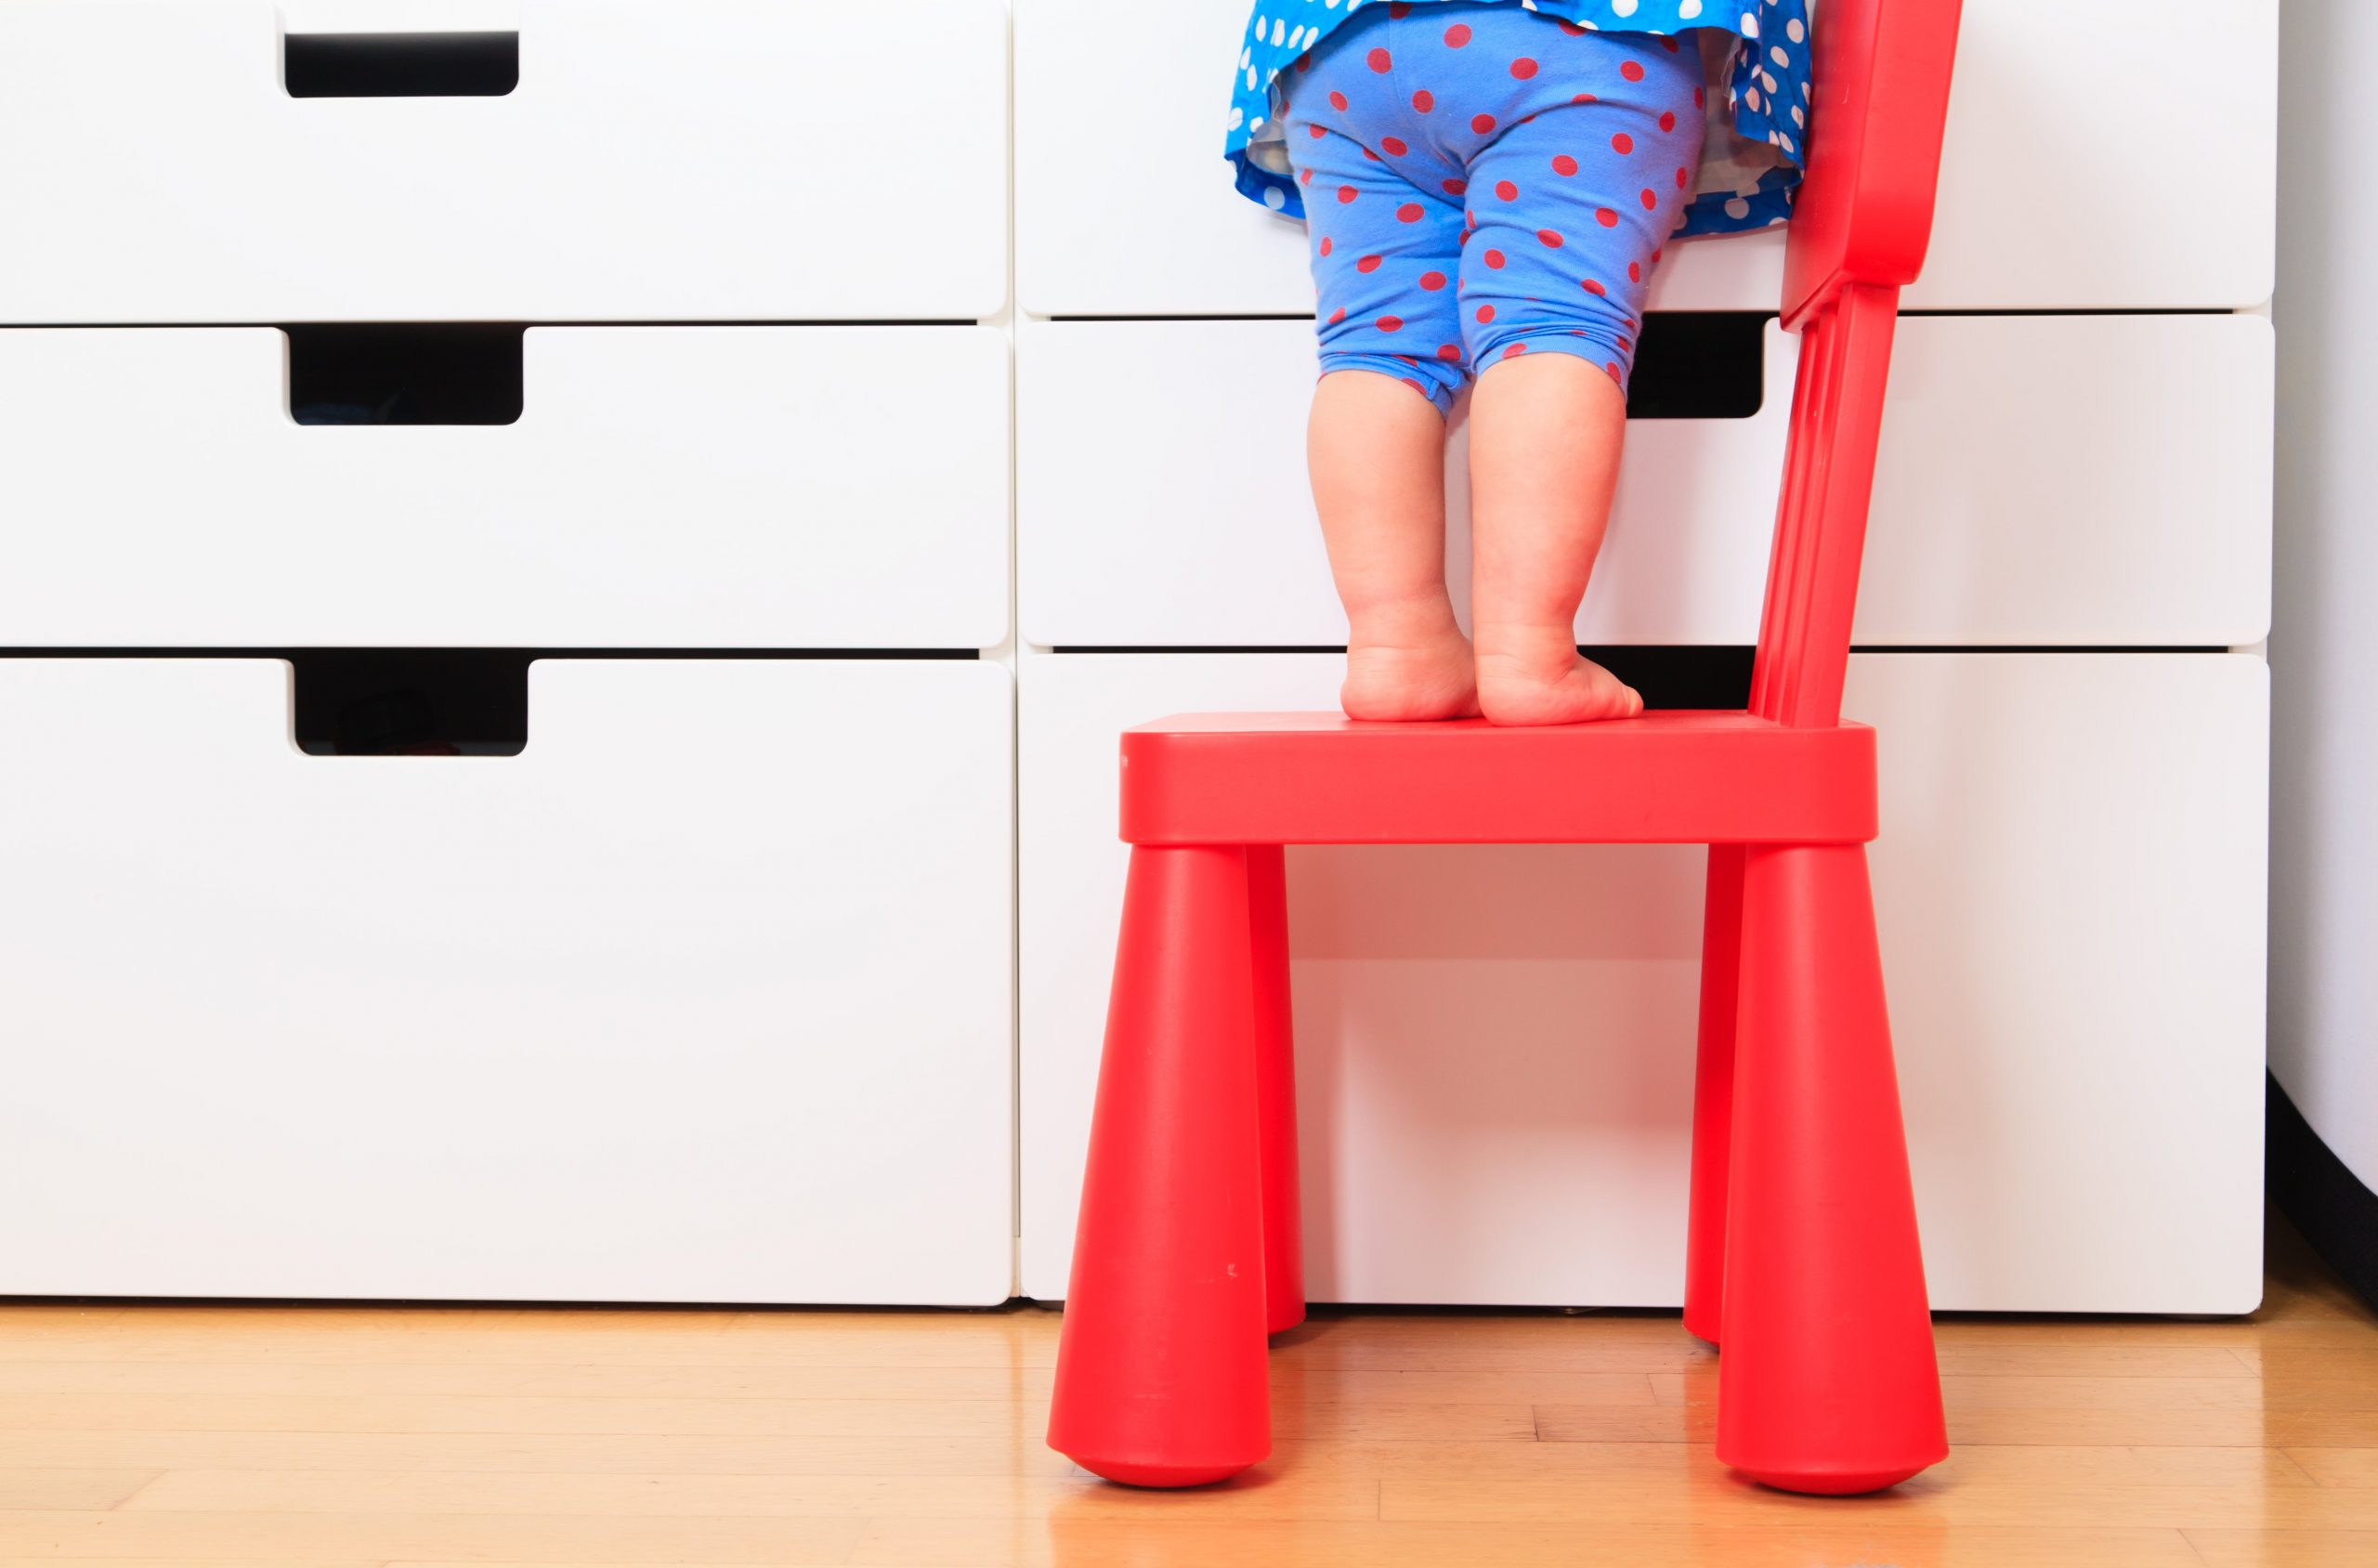 blog image of a child standing on a chair to reach something dangerous on the dresser